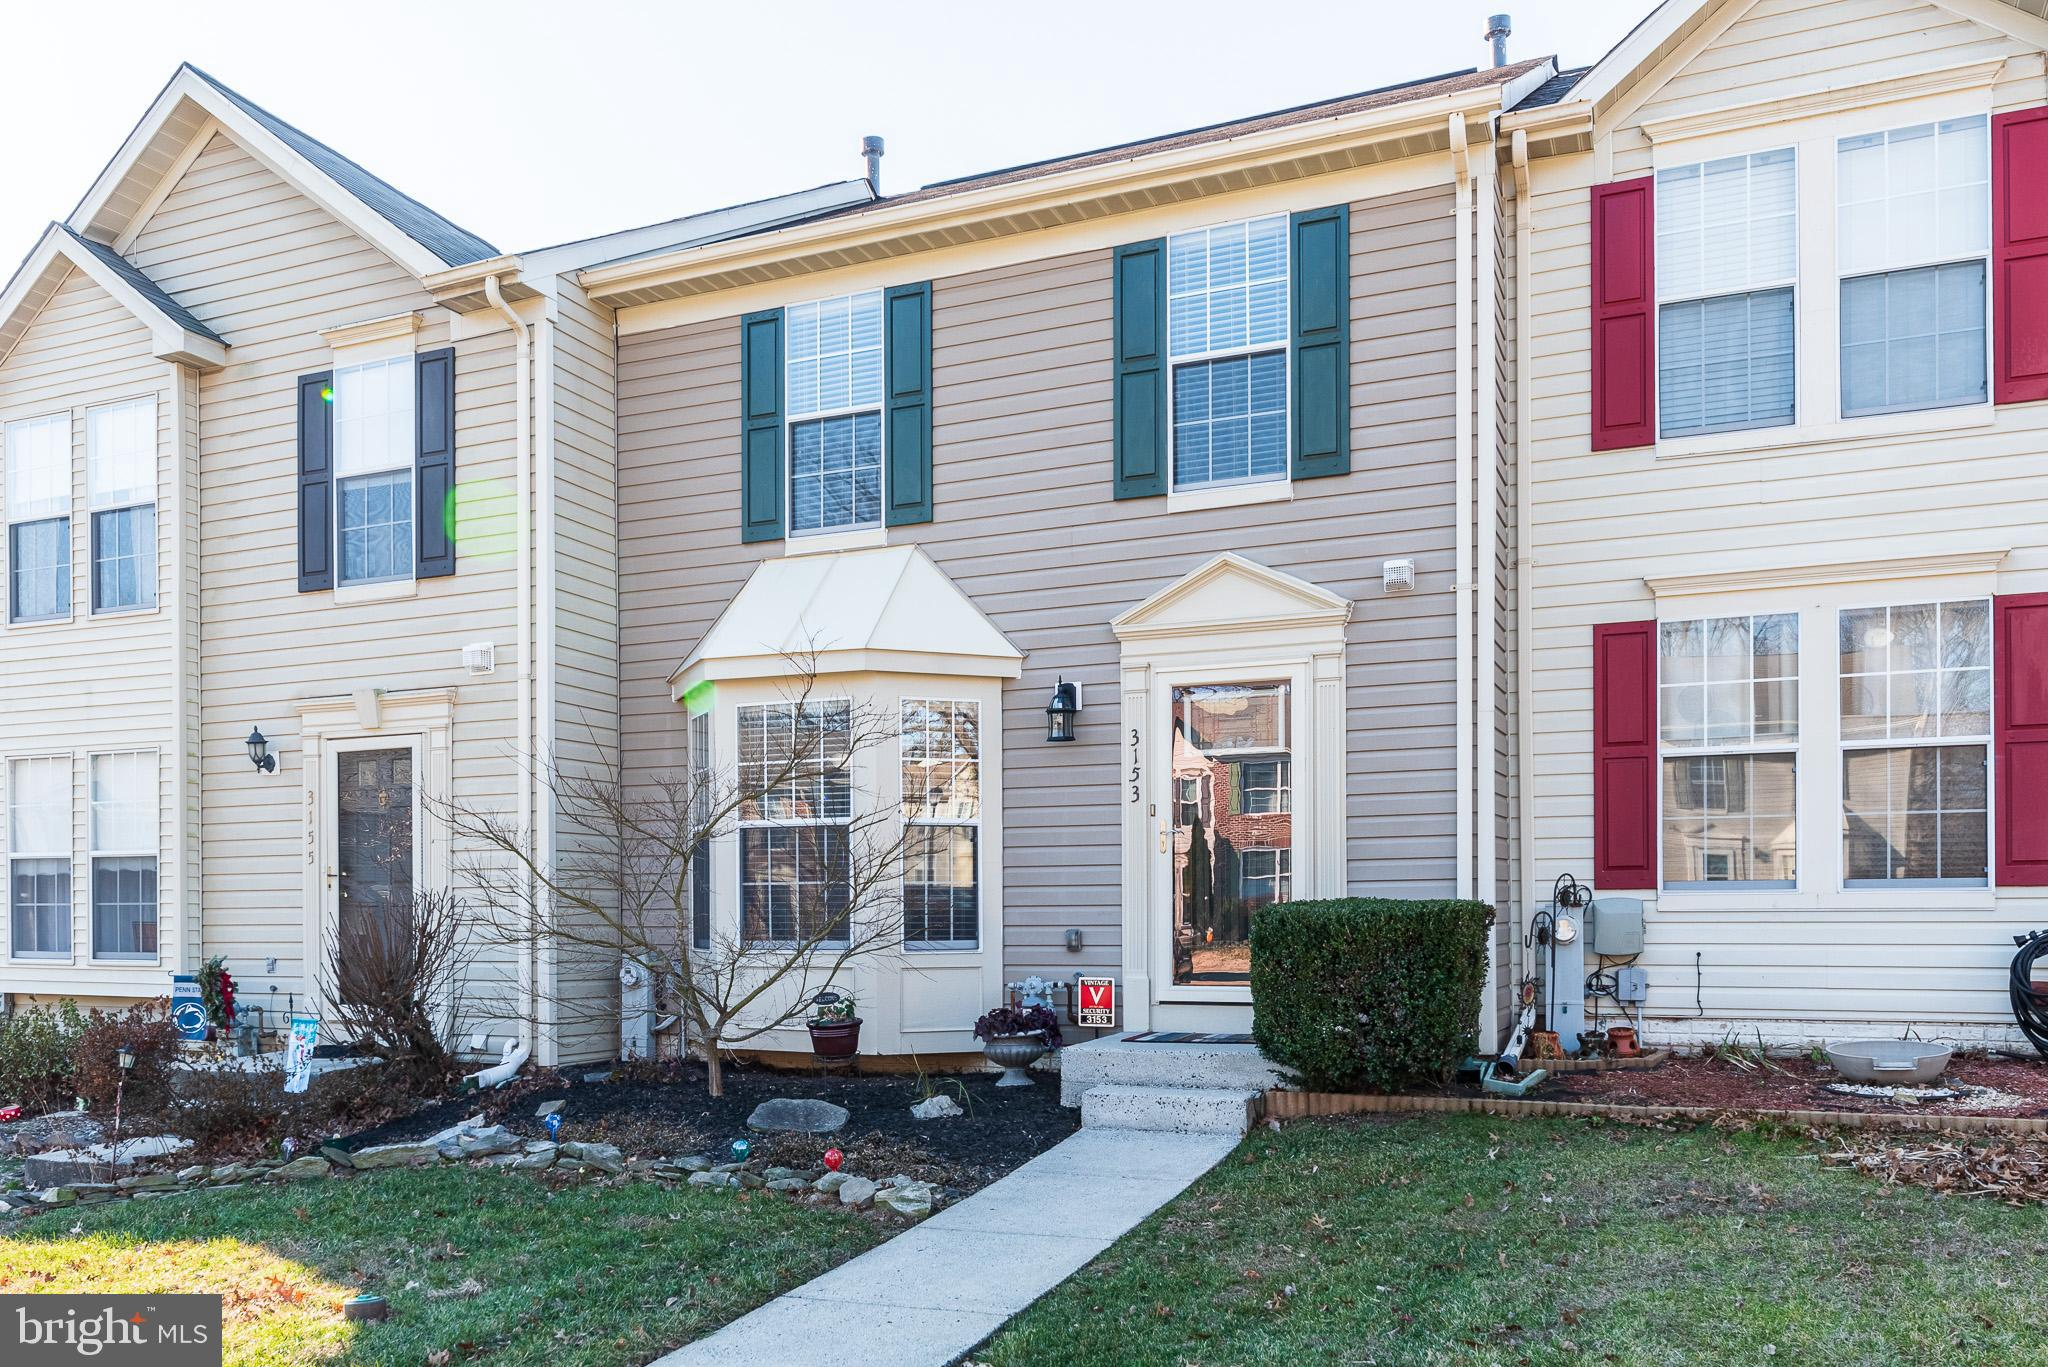 MUST SEE UPDATED 3 BED, 1.5 BATH TOWNHOME IN BOX HILL SOUTH!! THIS HOME HAS MANY FEATURES INCLUDING